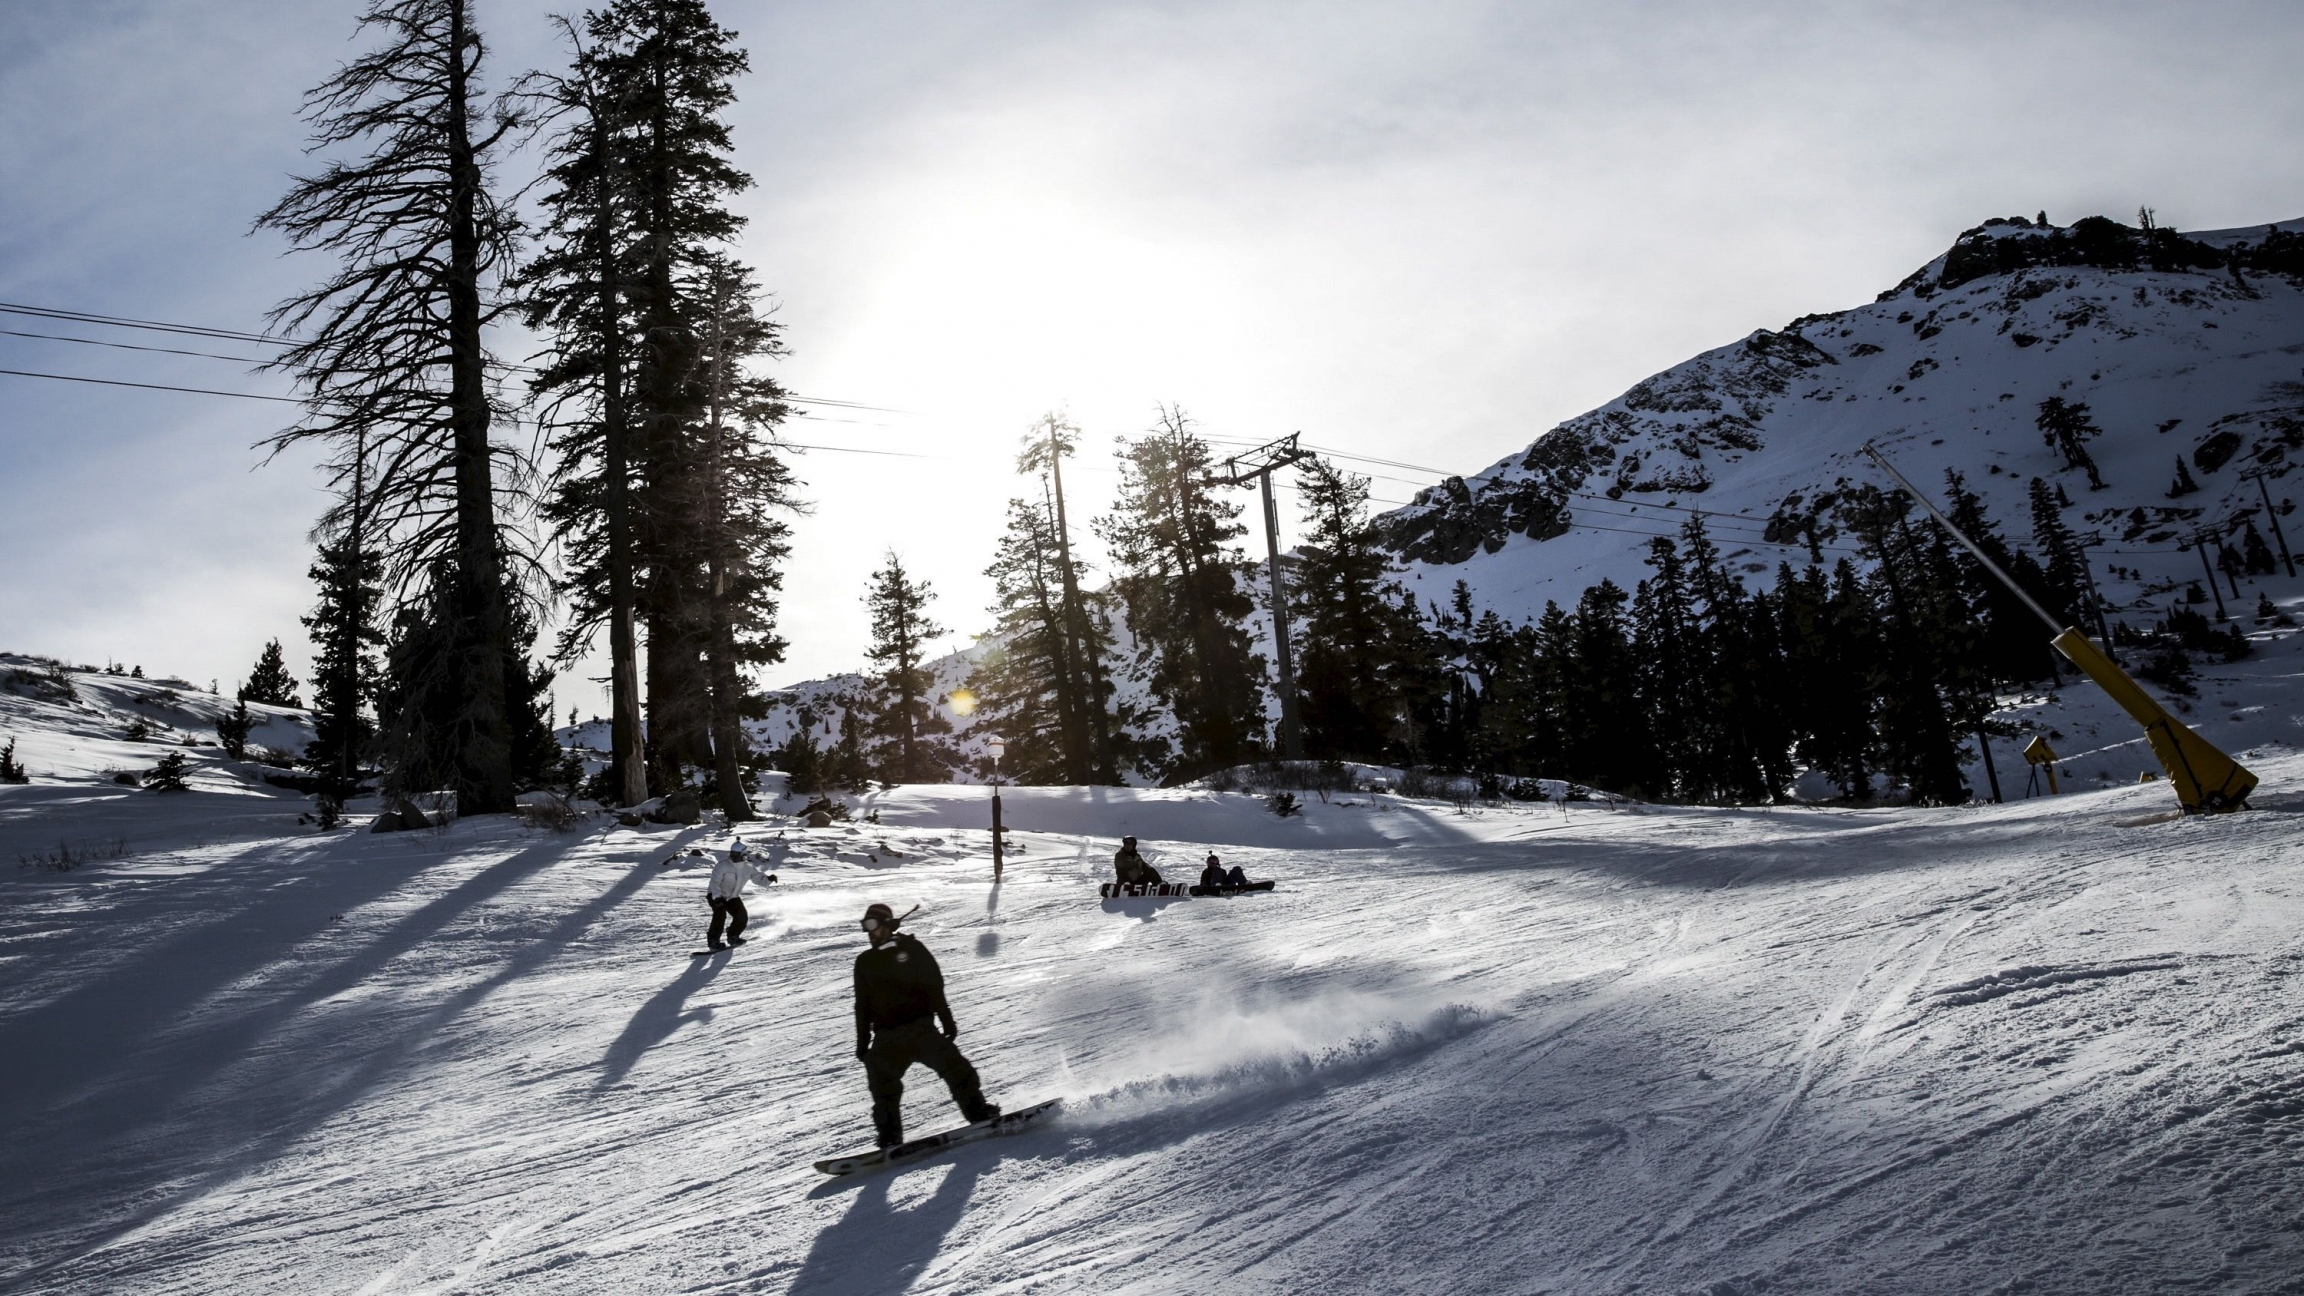 A snowboarder heads back to the lodge at Squaw Valley in Olympic Valley, California, Dec. 5, 2015. Last month, the resort announced plans to change its name in the coming year.